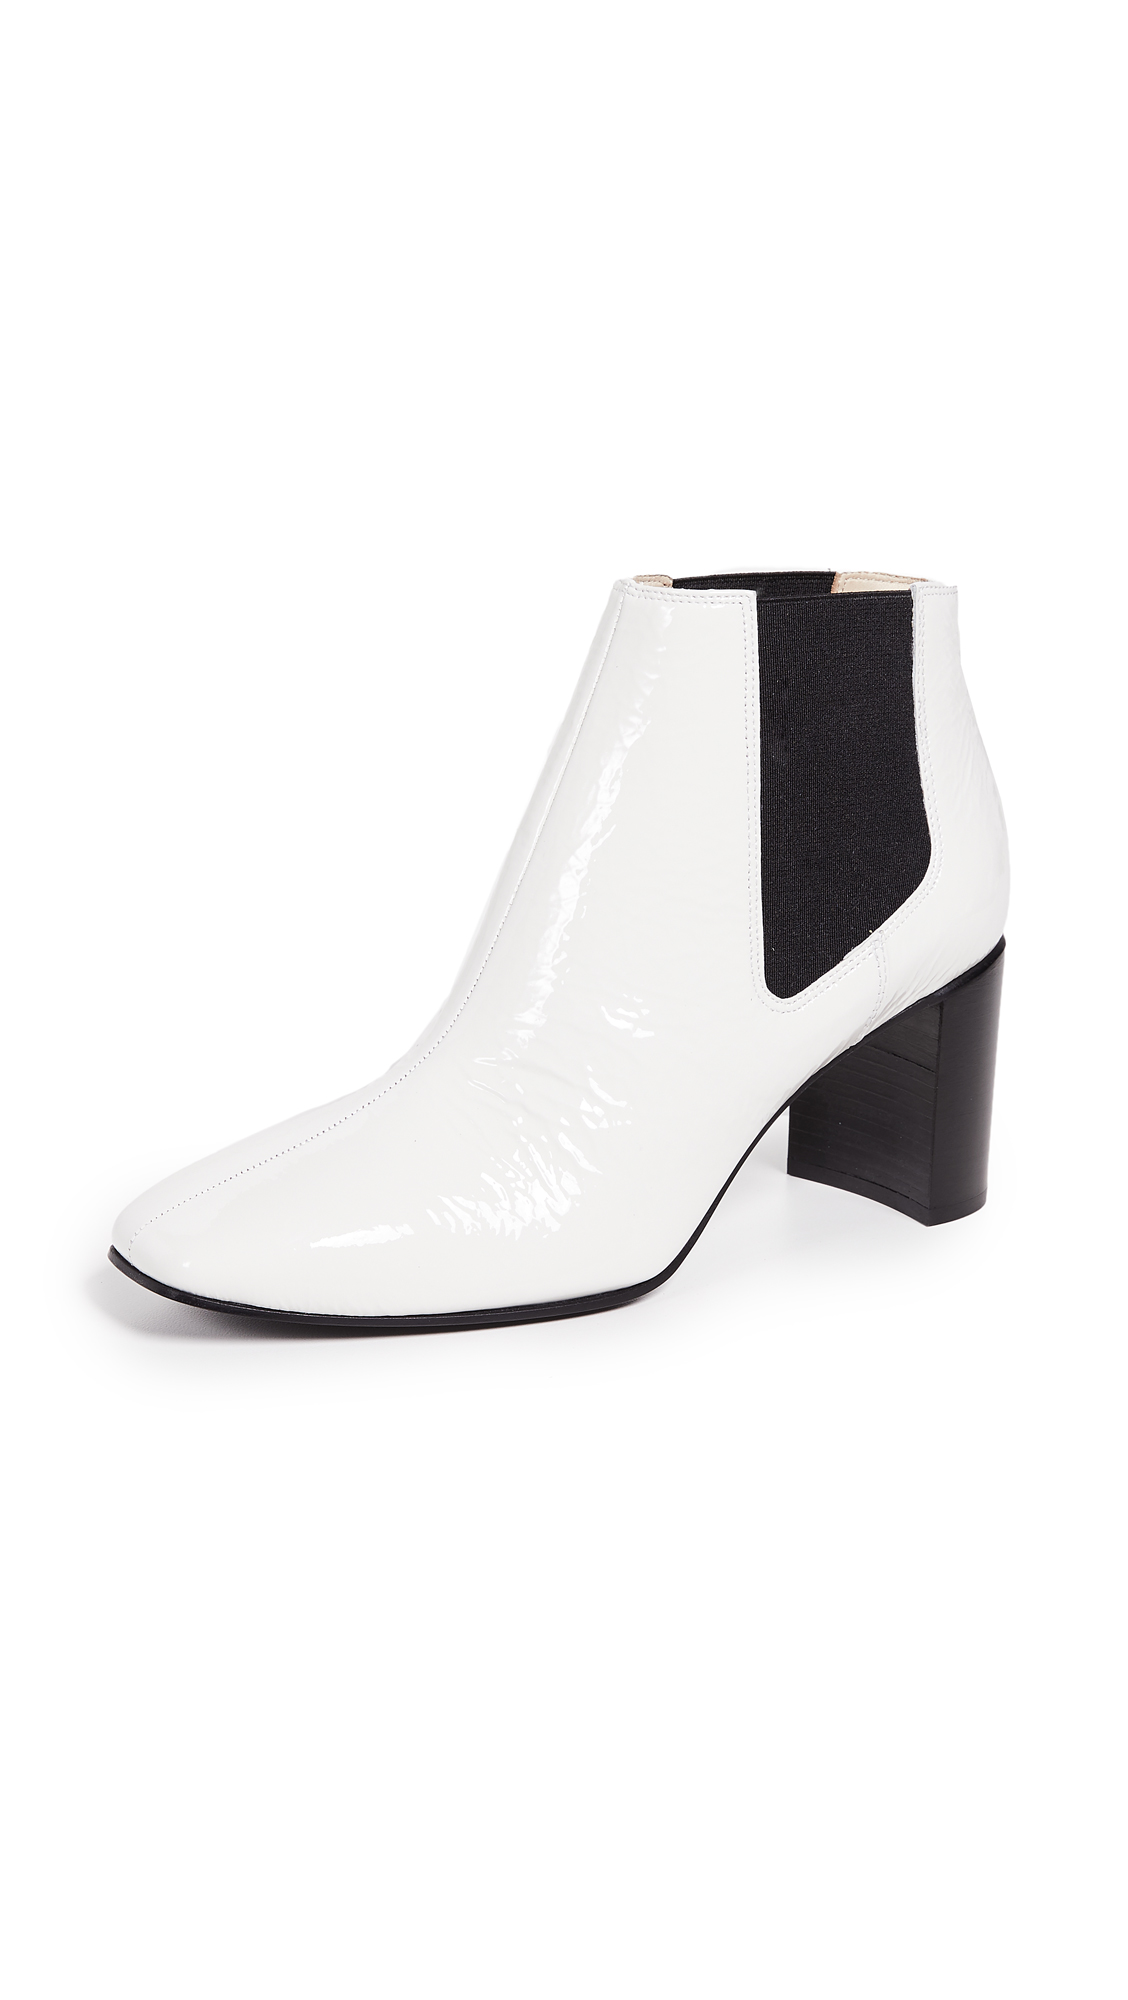 Aslen Patent Leather Boots